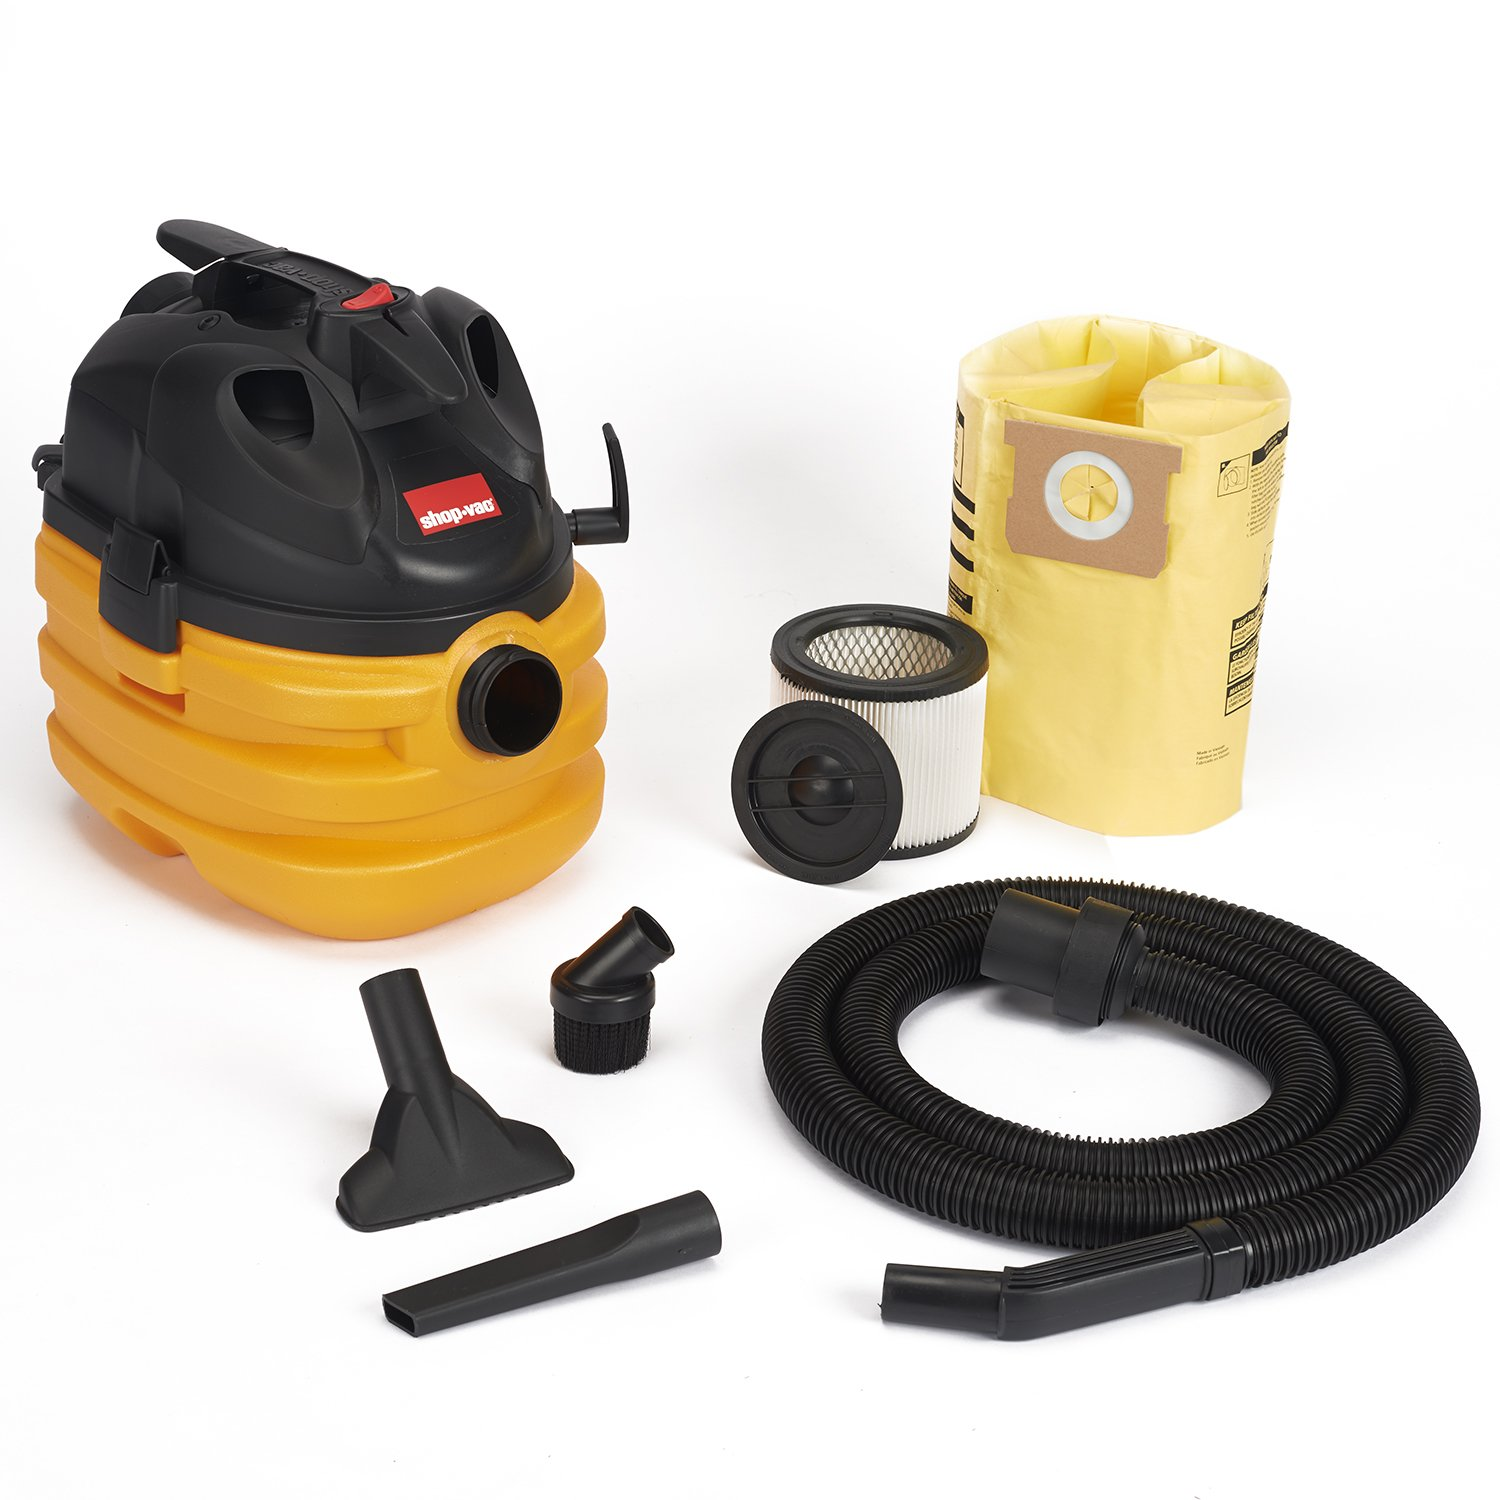 Shop-Vac 5873000 Hawkeye Portable Contractor Wet/Dry Vacuum Cleaner